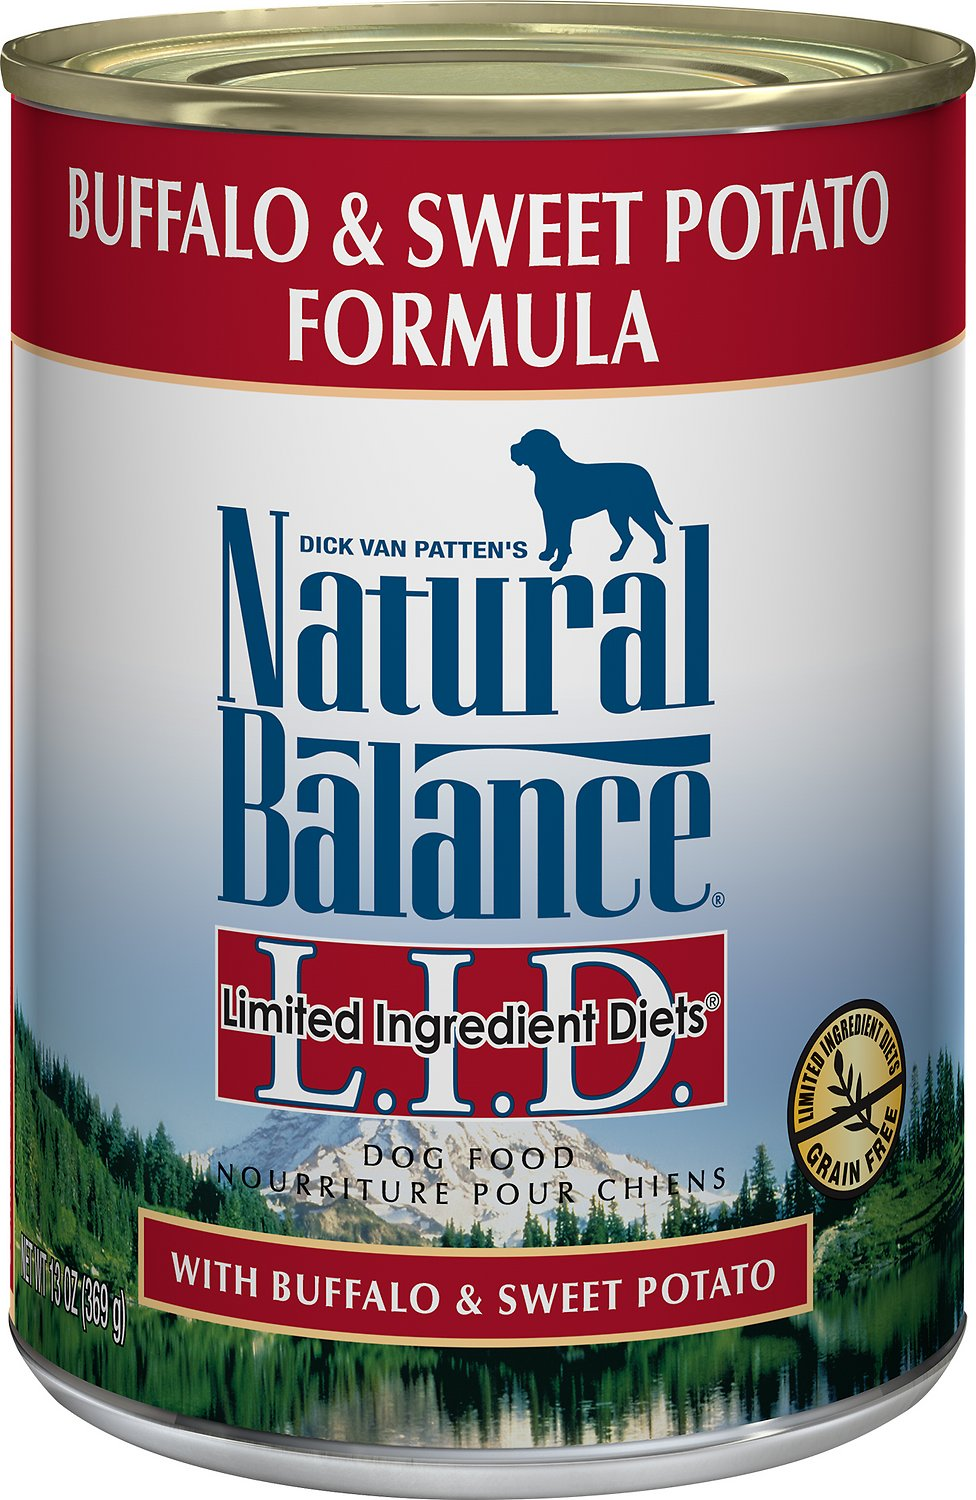 Natural Balance L.I.D. Limited Ingredient Diets Buffalo & Sweet Potatoes Formula Grain-Free Canned Dog Food, 13-oz